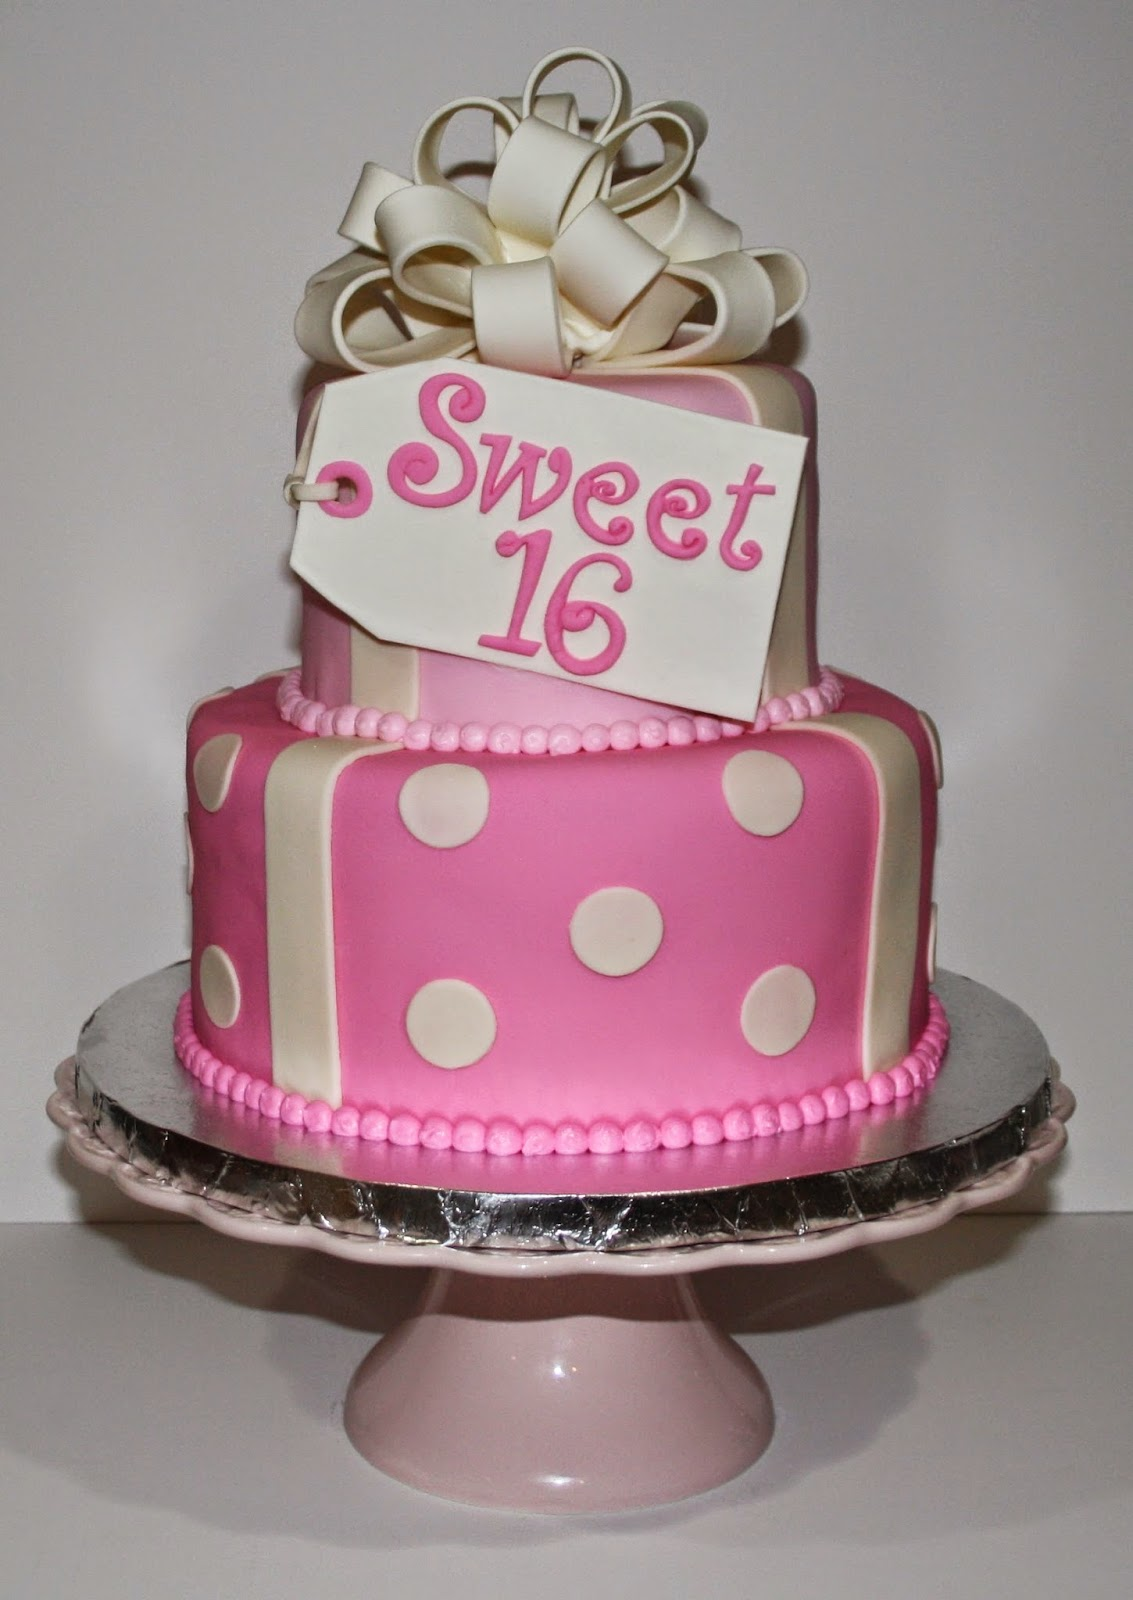 Jacqueline S Sweet Shop Sweet 16 Birthday Cake And Cupcakes